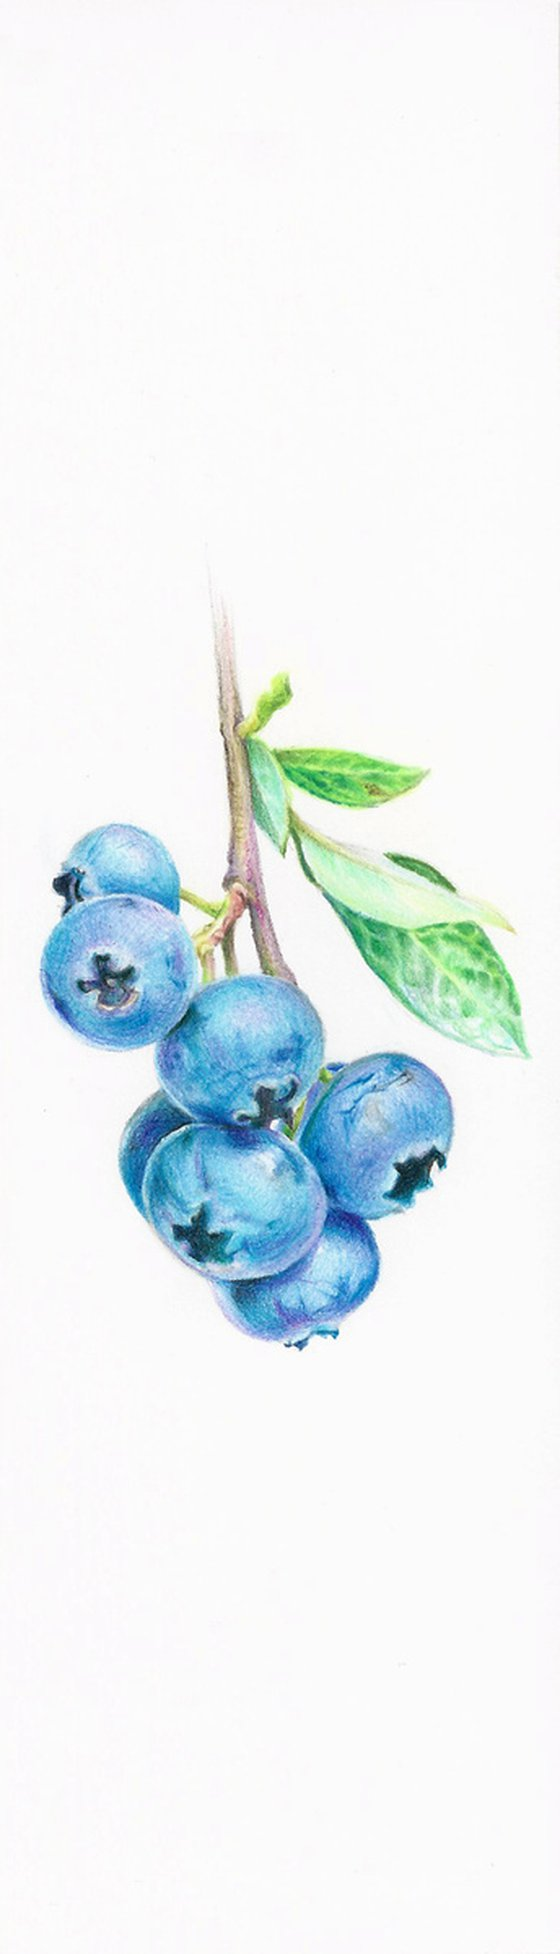 My Wild Berries as Bookmarks - The Blackcurrant